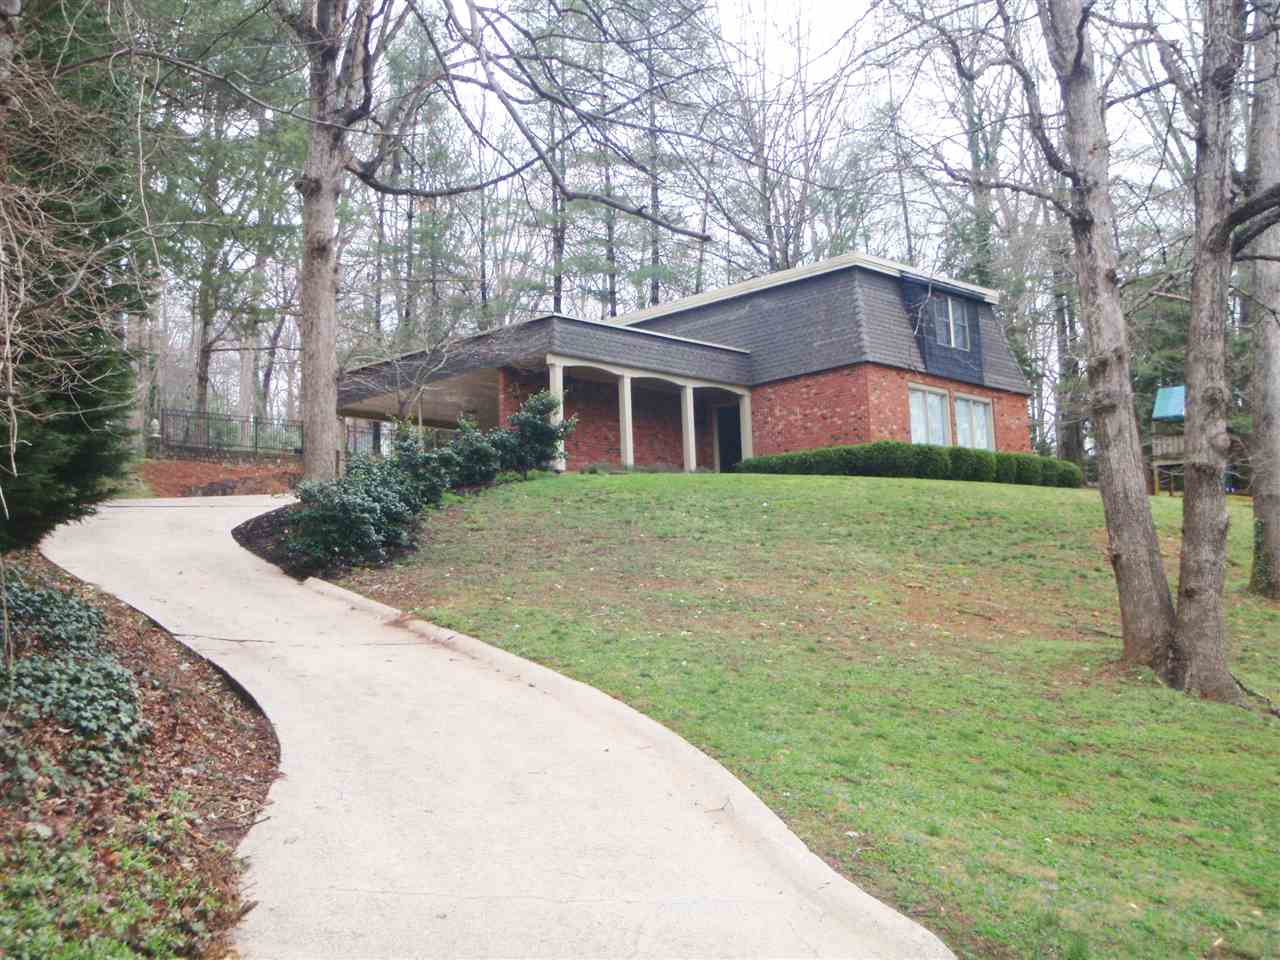 970 24th Ave Dr NW, Hickory, NC 28601